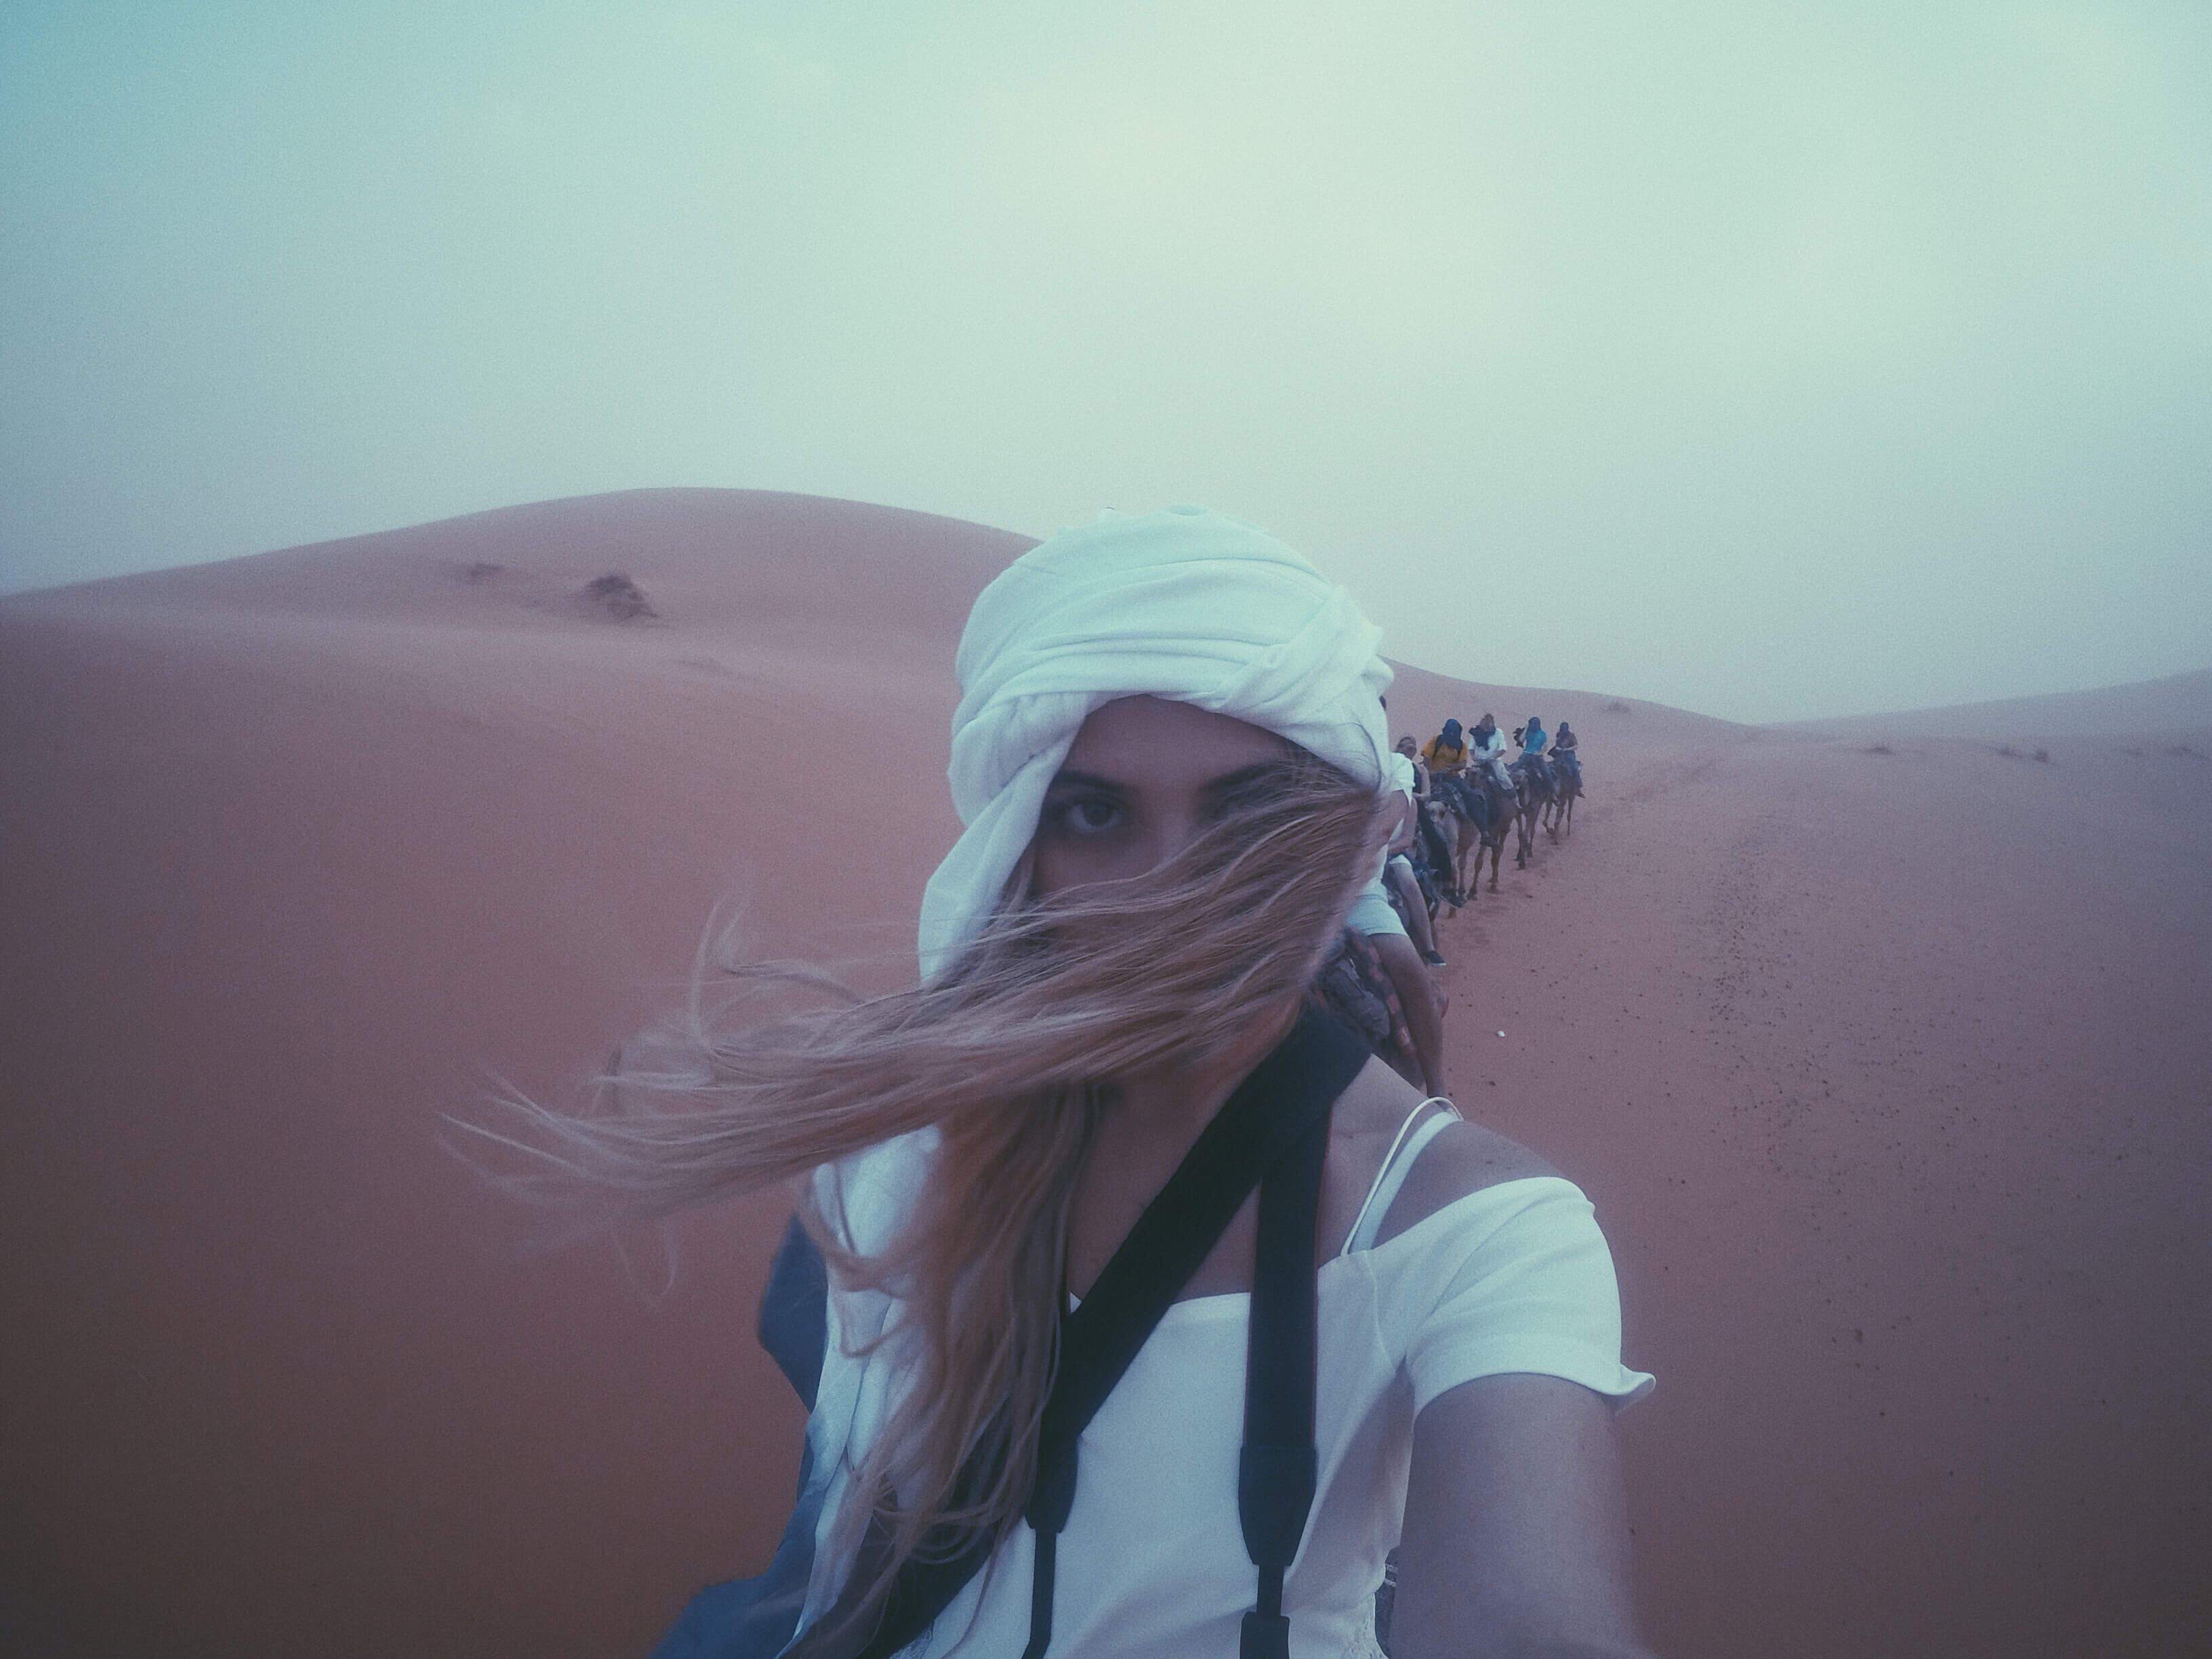 Camel riding in the Sahara desert in Morocco